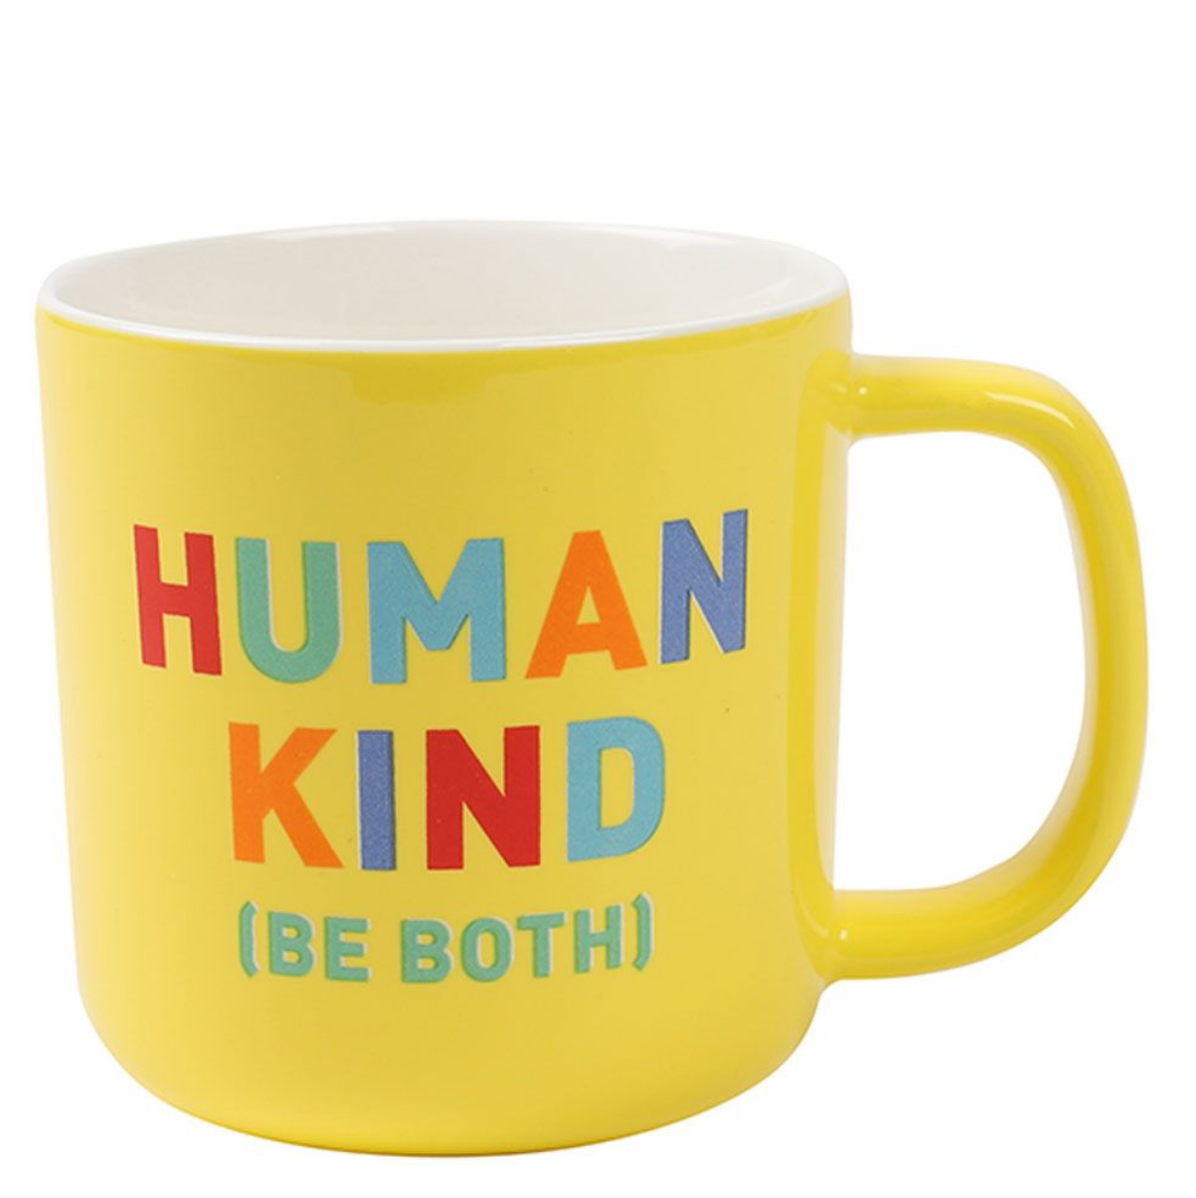 Human Kind ceramic mug by Paperchase